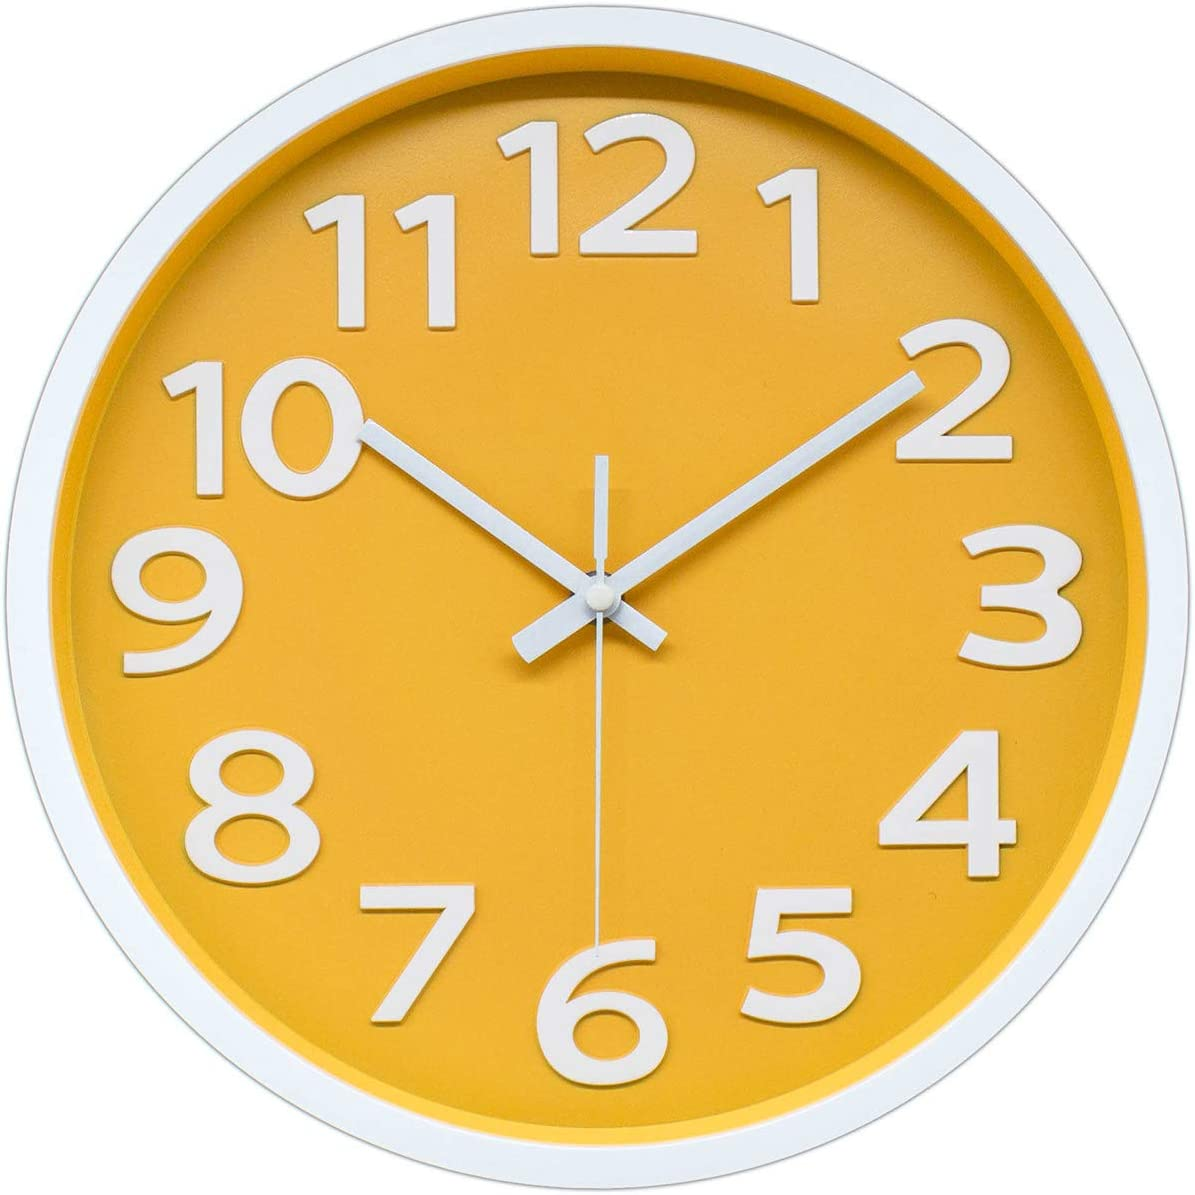 12 Inch Modern Wall Clock Silent Non-Ticking Battery Operated 3D Numbers Bright Color Dial Face Wall Clock for Home/Office Decor,Yellow